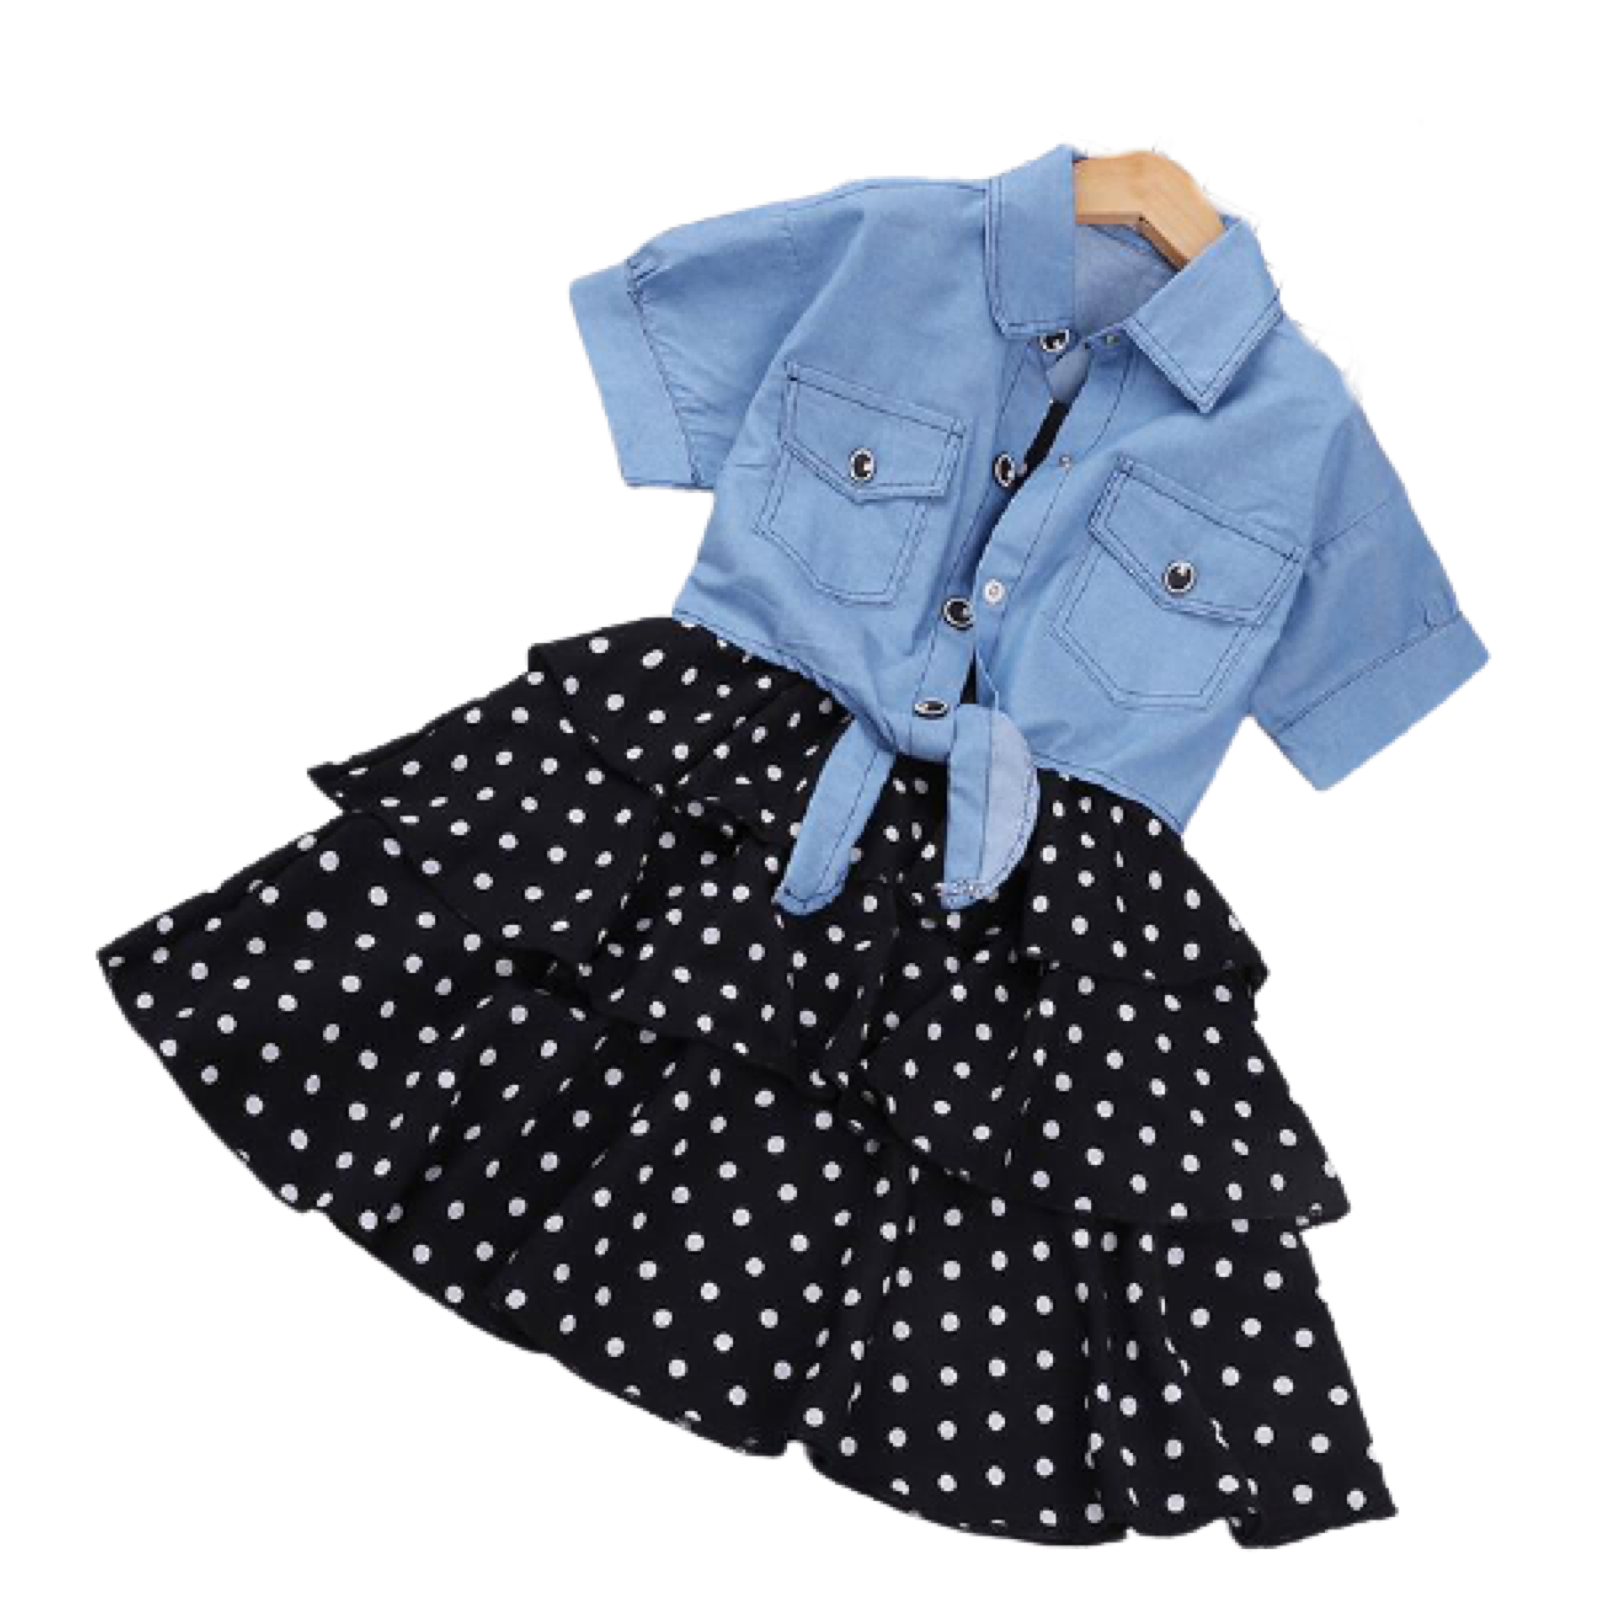 Whitney Short-Sleeved Denim Jacket & Polka Dot Skirt